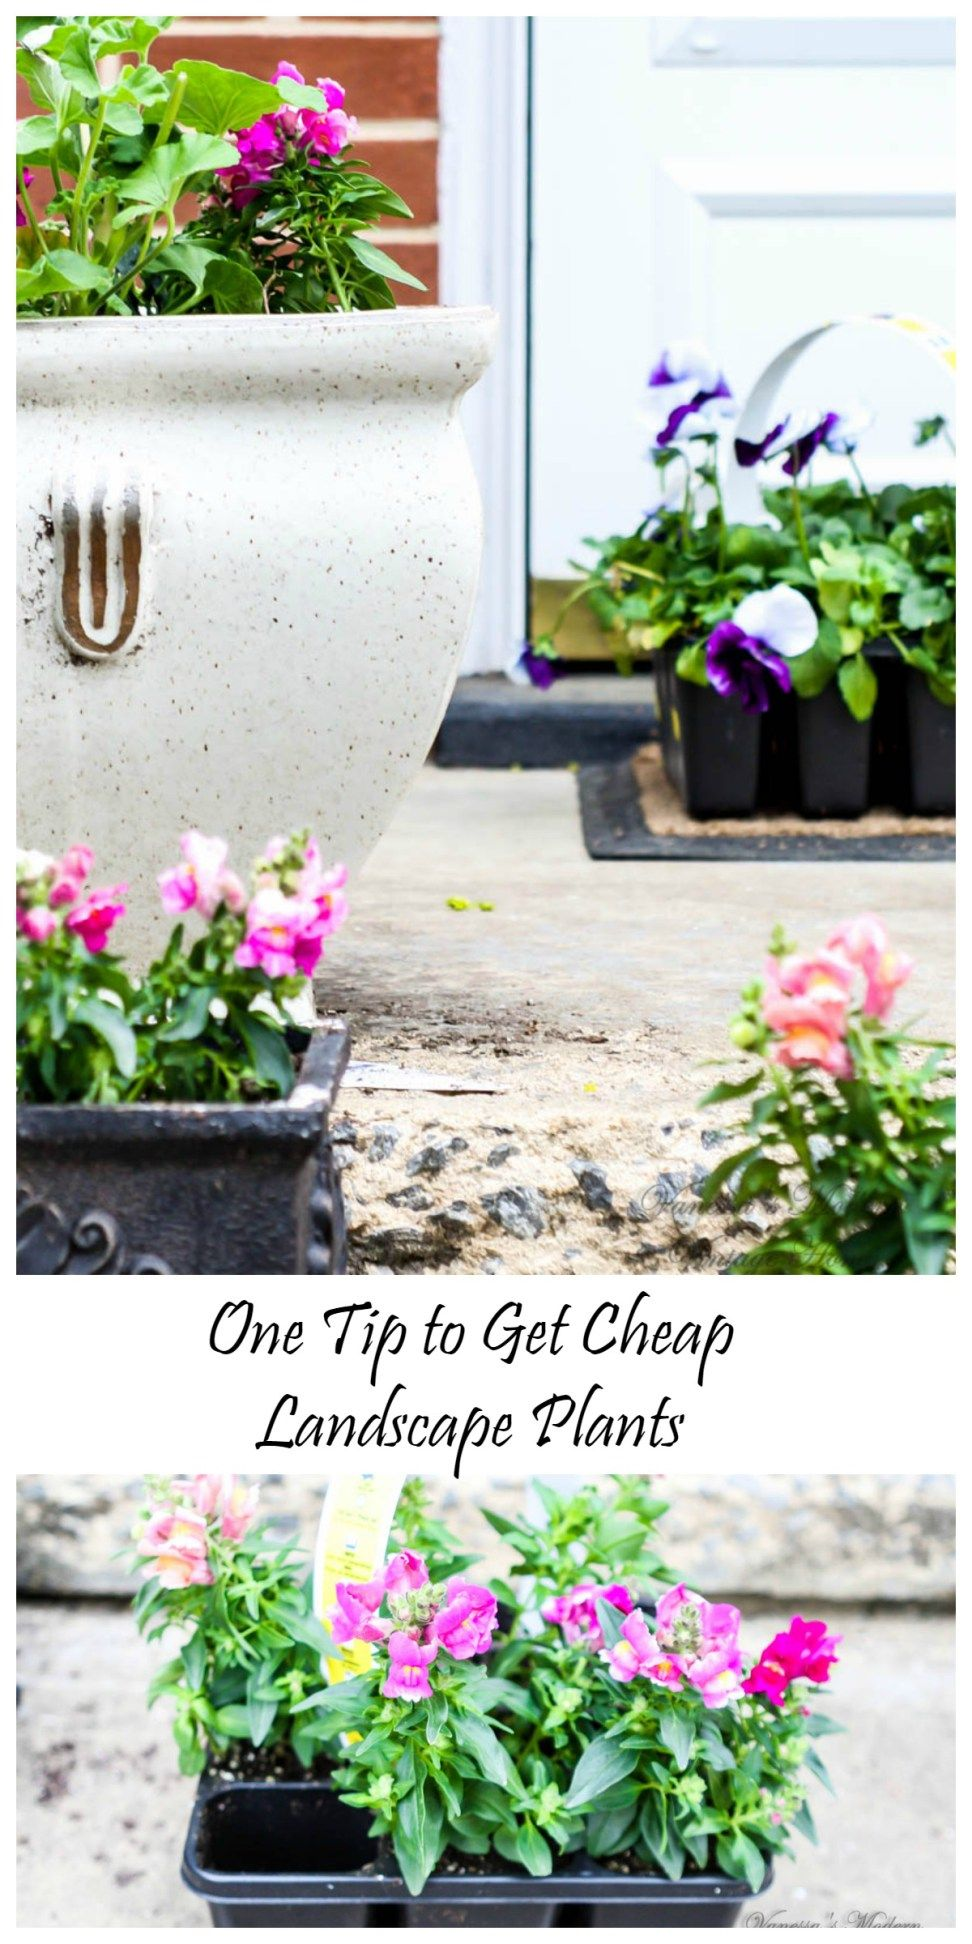 One trick to getting cheap landscape plants | Cheap plants ...